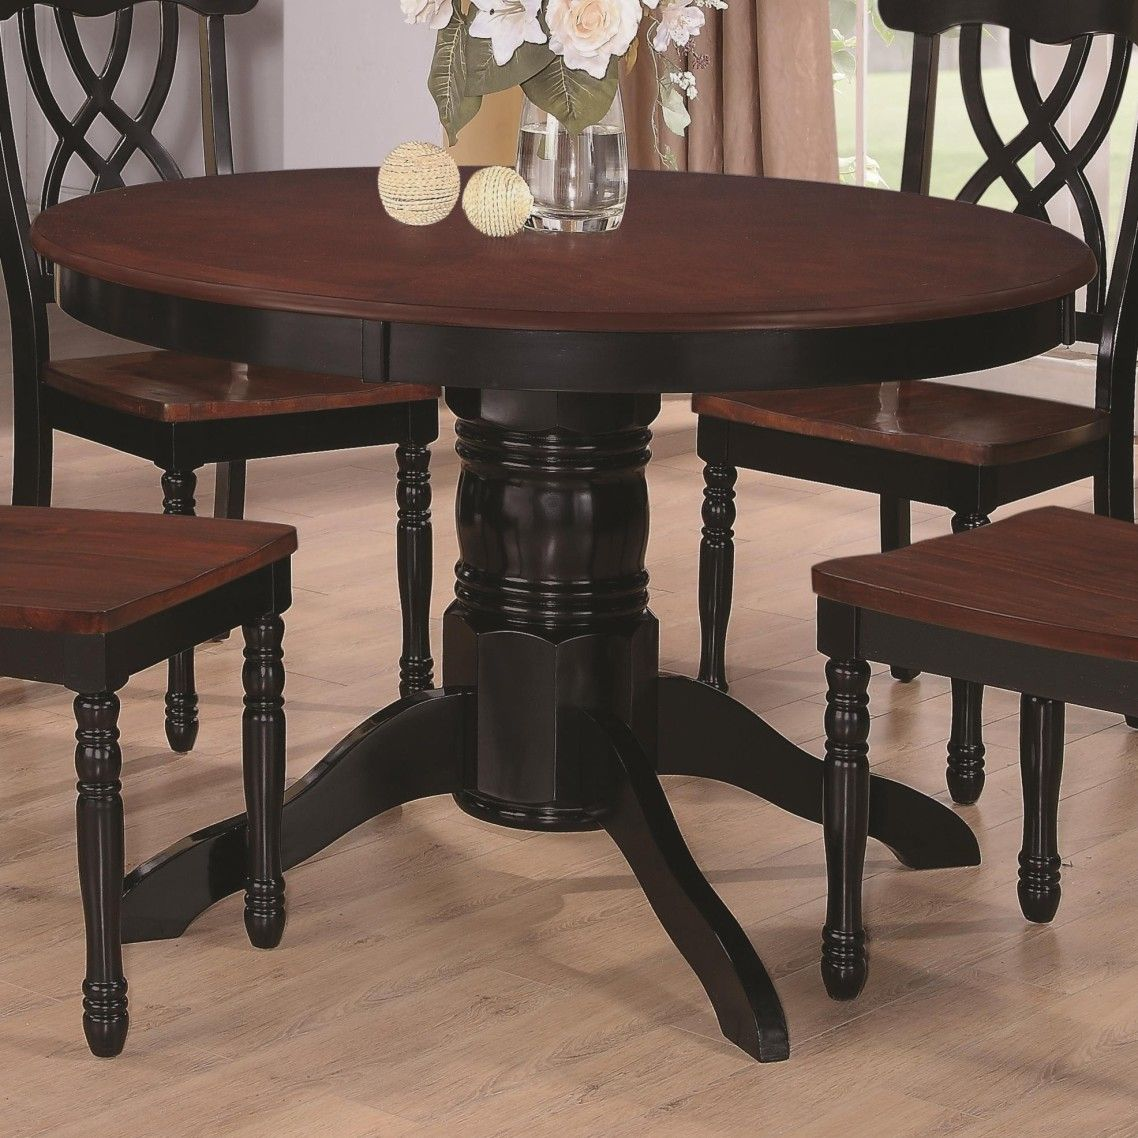 Painted round dining table  Awesome Carved Black Painted Wooden Drop Leaf Pedestal ideas